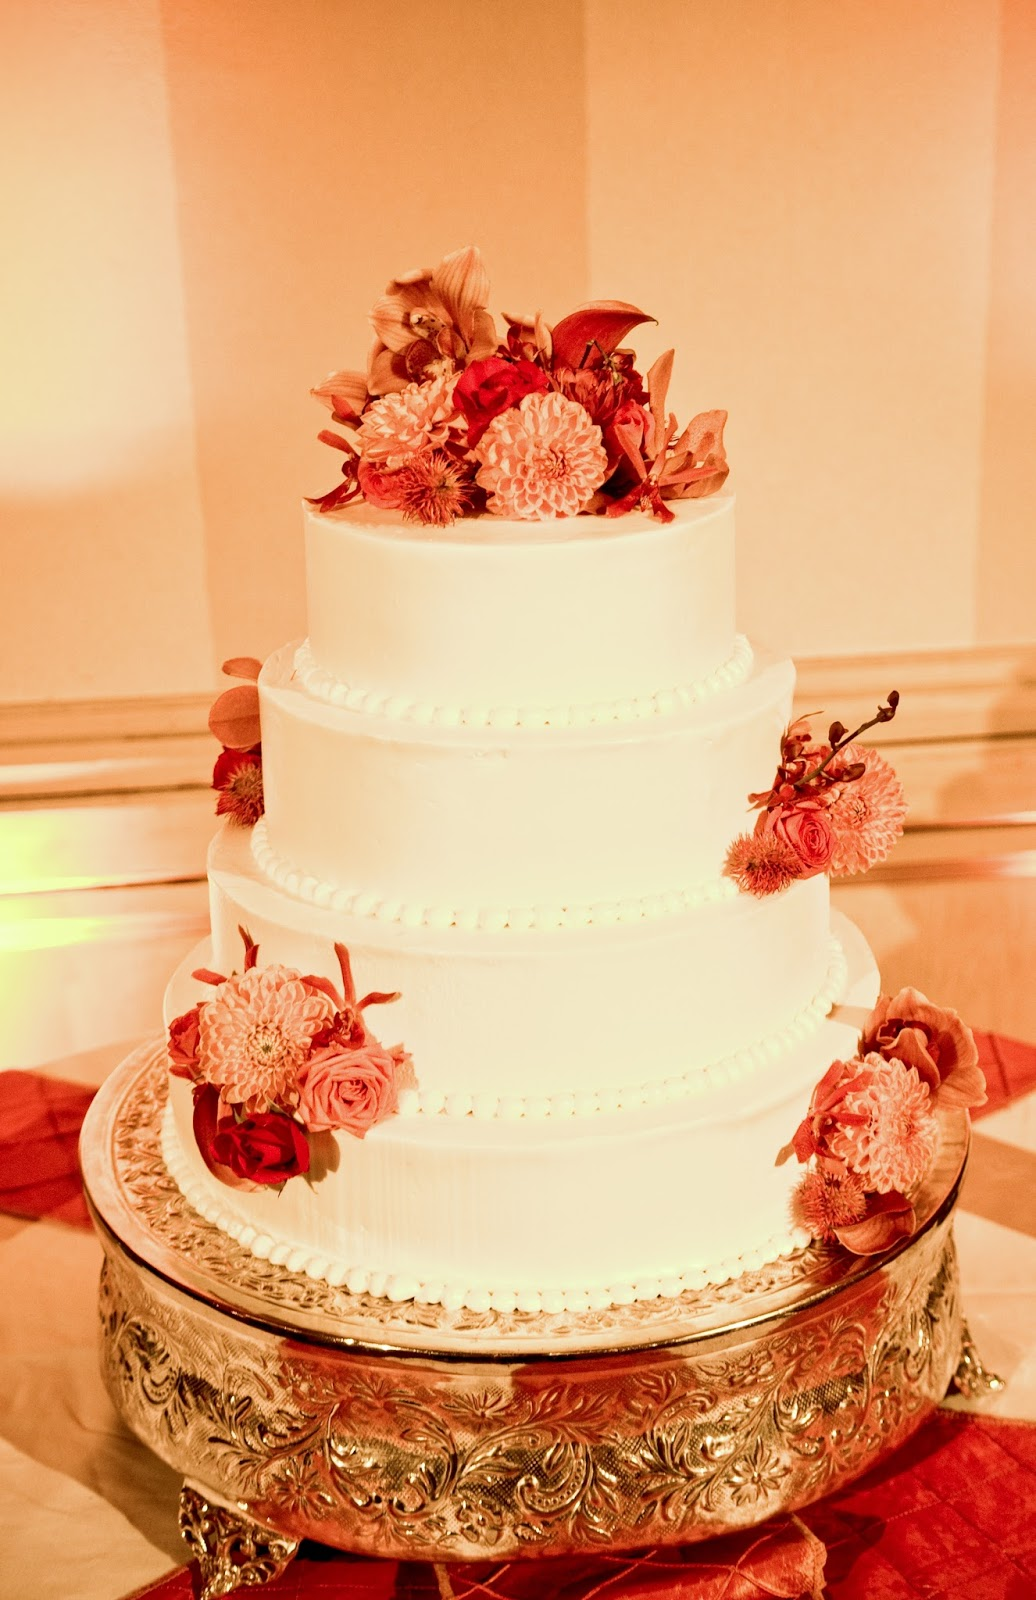 nani and her j\'s: 6th and 60th anniversaries. and cake.